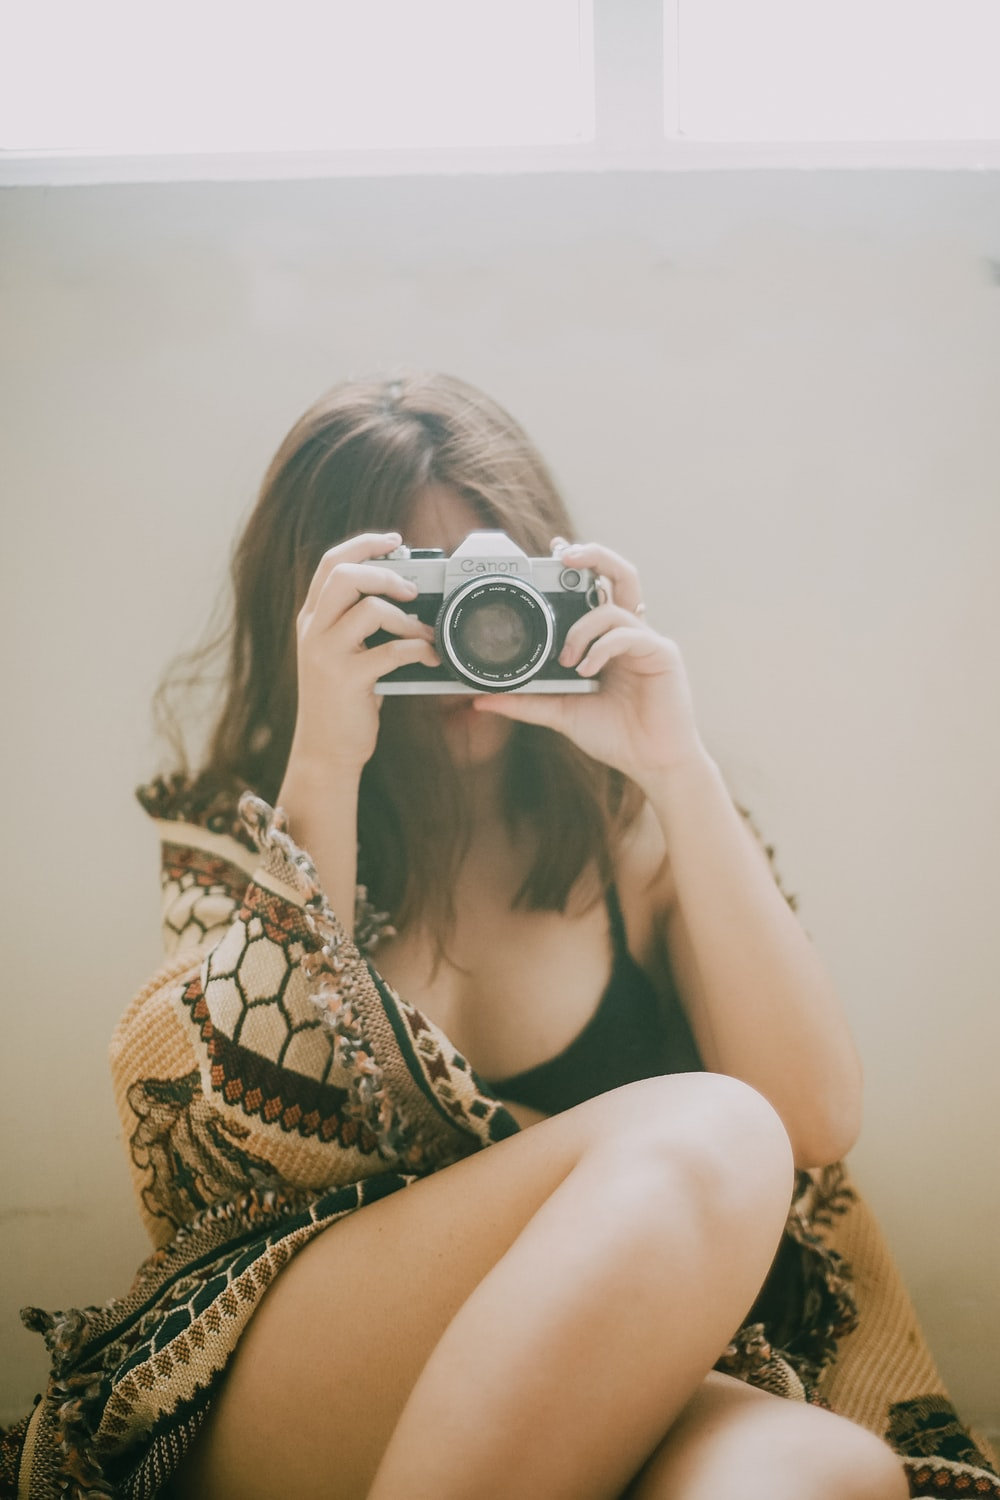 woman in black and white floral bikini top holding black and silver dslr camera